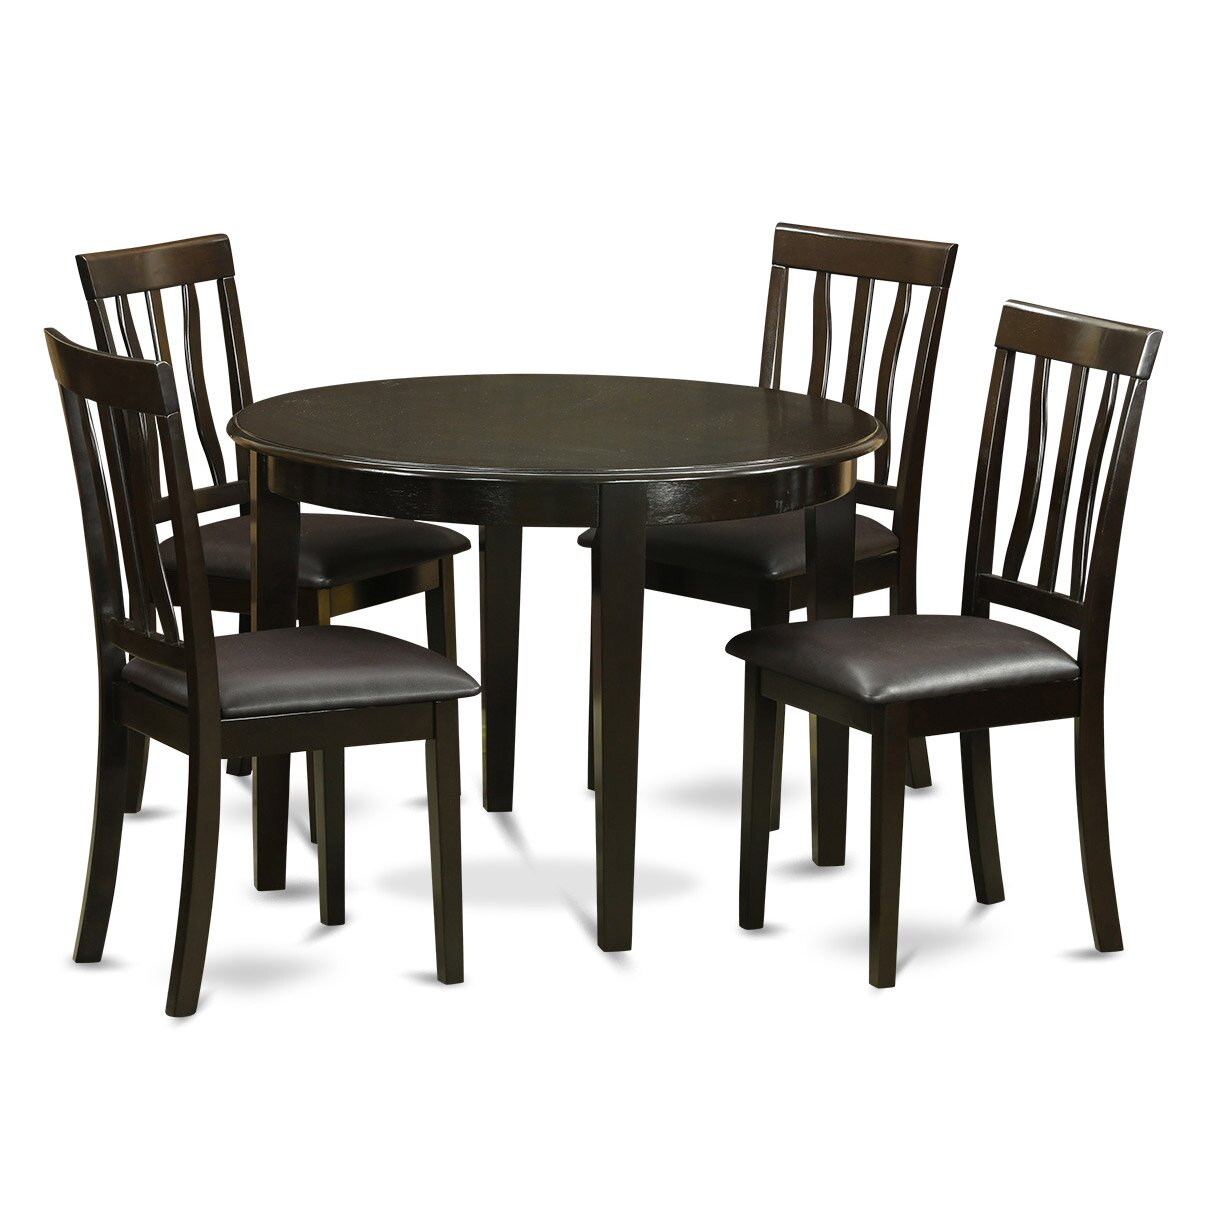 Wooden importers boston 5 piece dining set wayfair for Compact kitchen table set